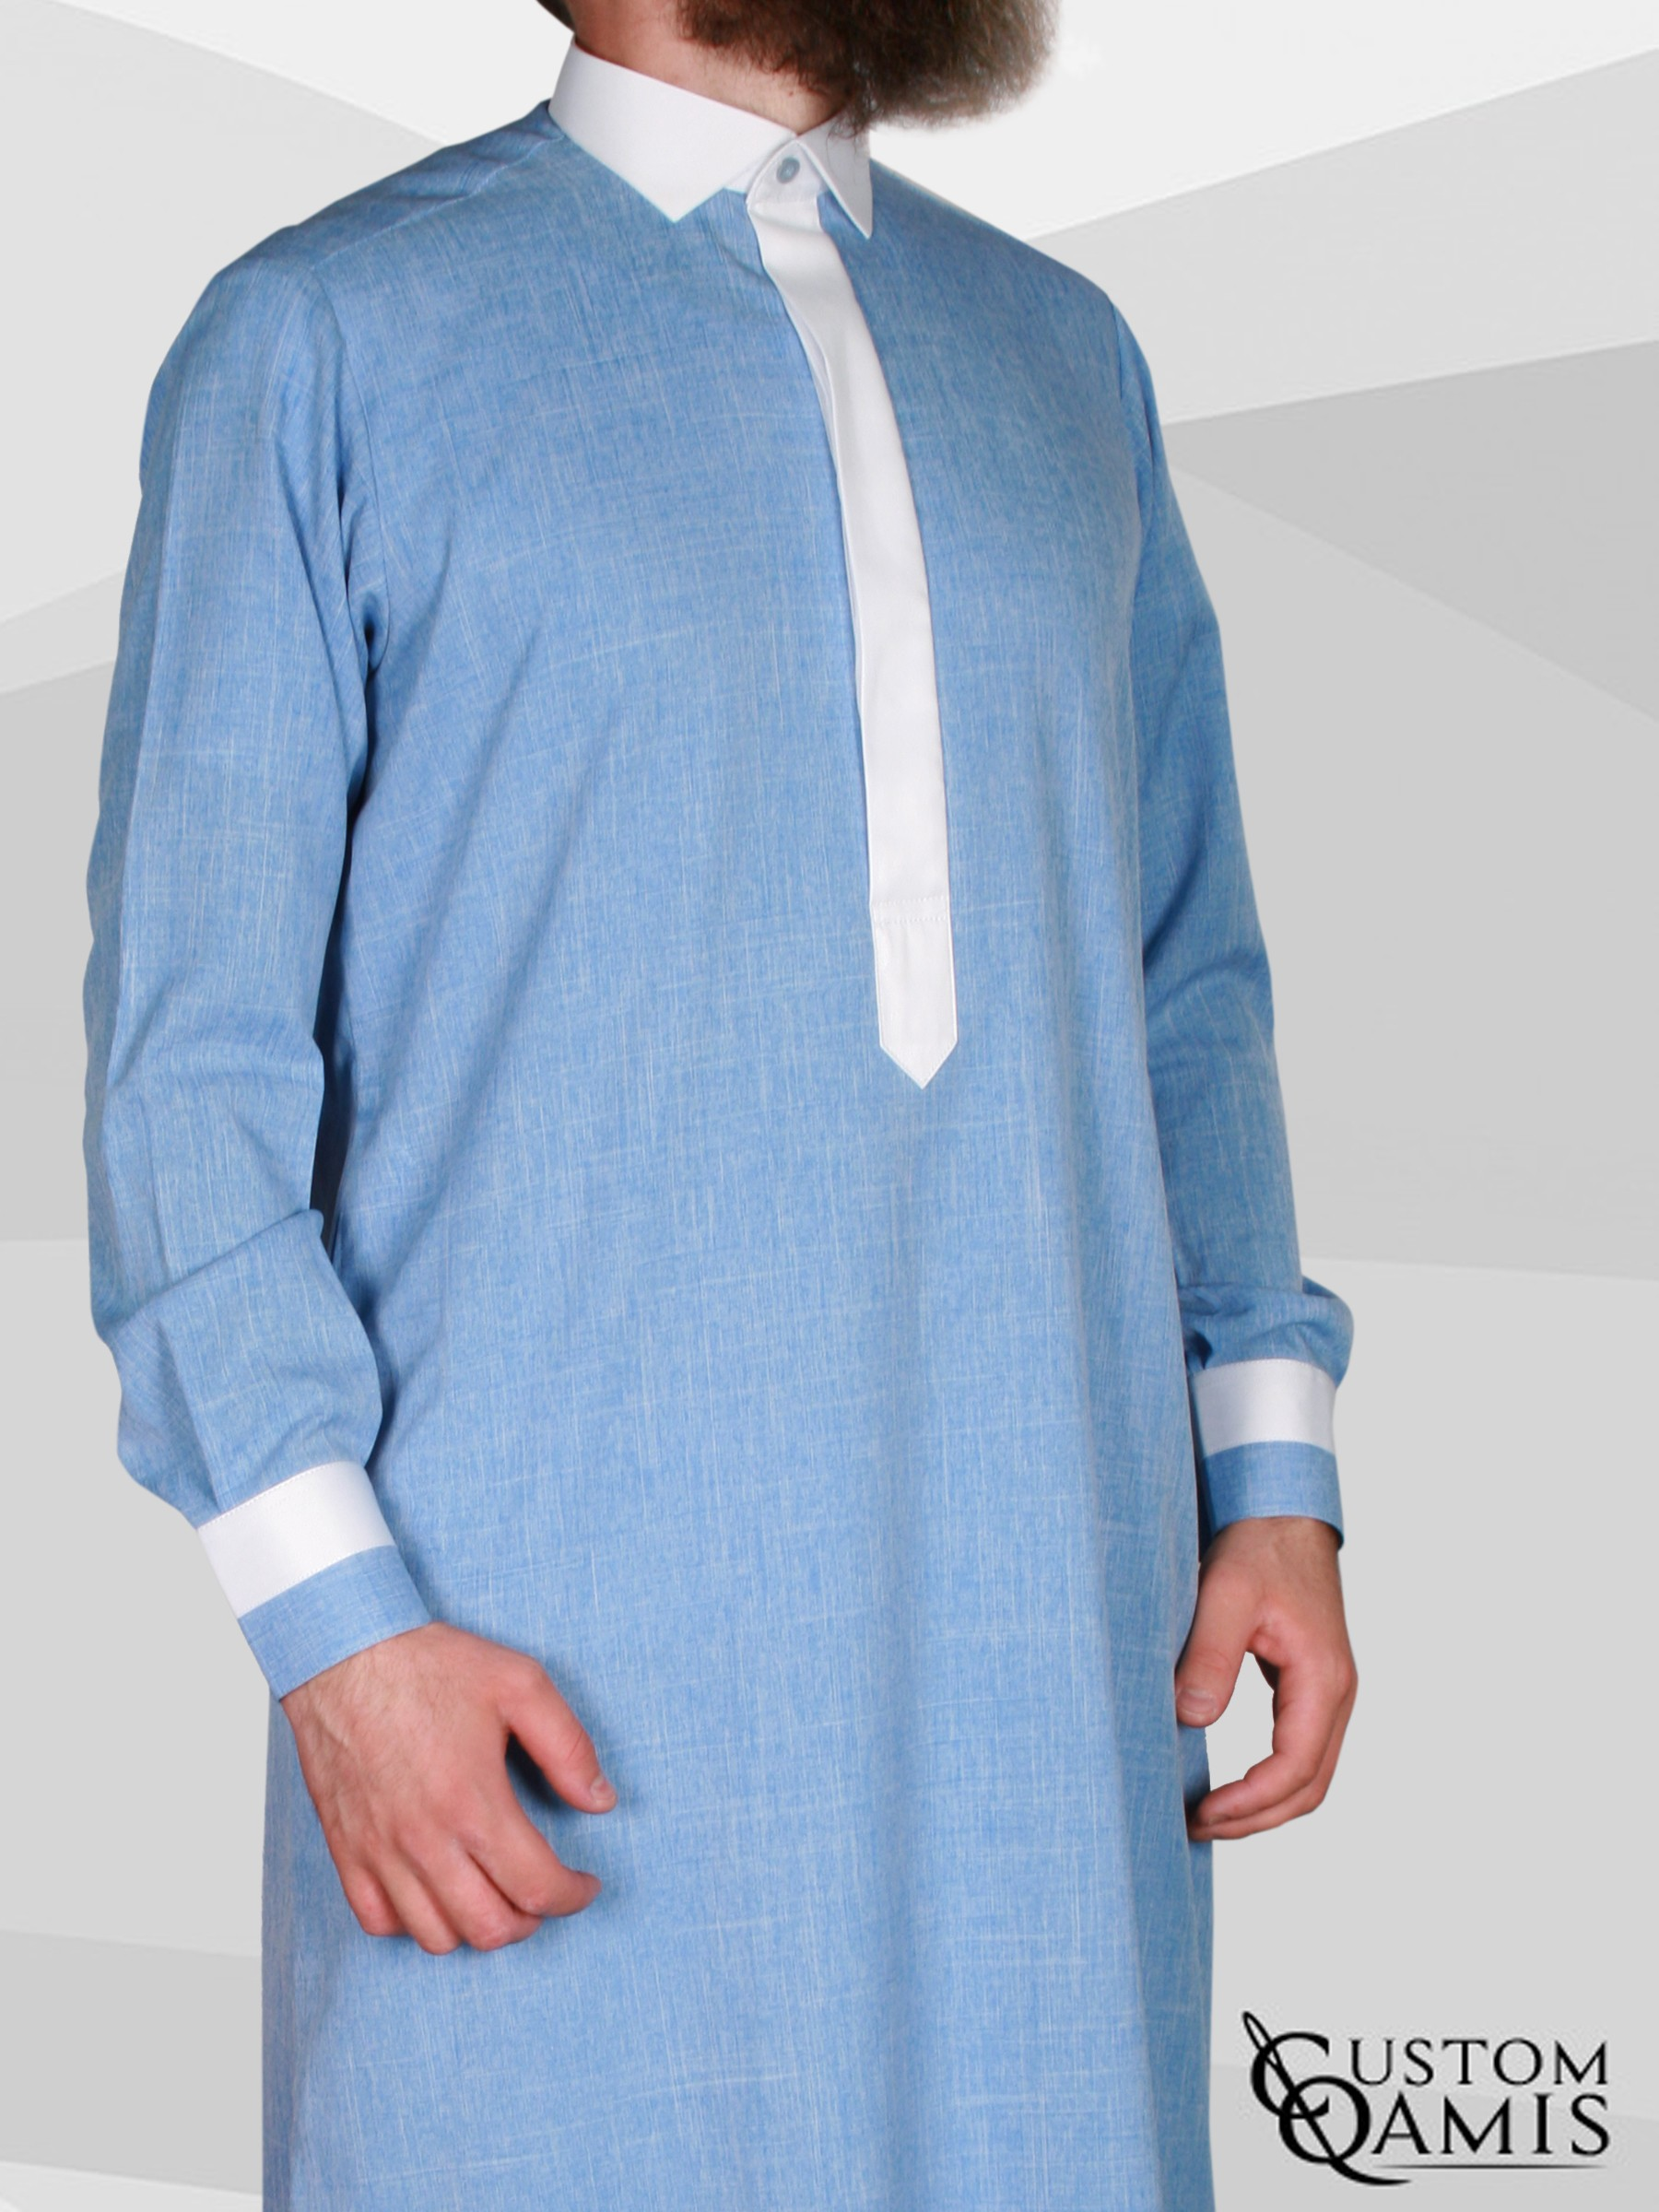 Two Tone thobe fabric Imperial sky blue and white